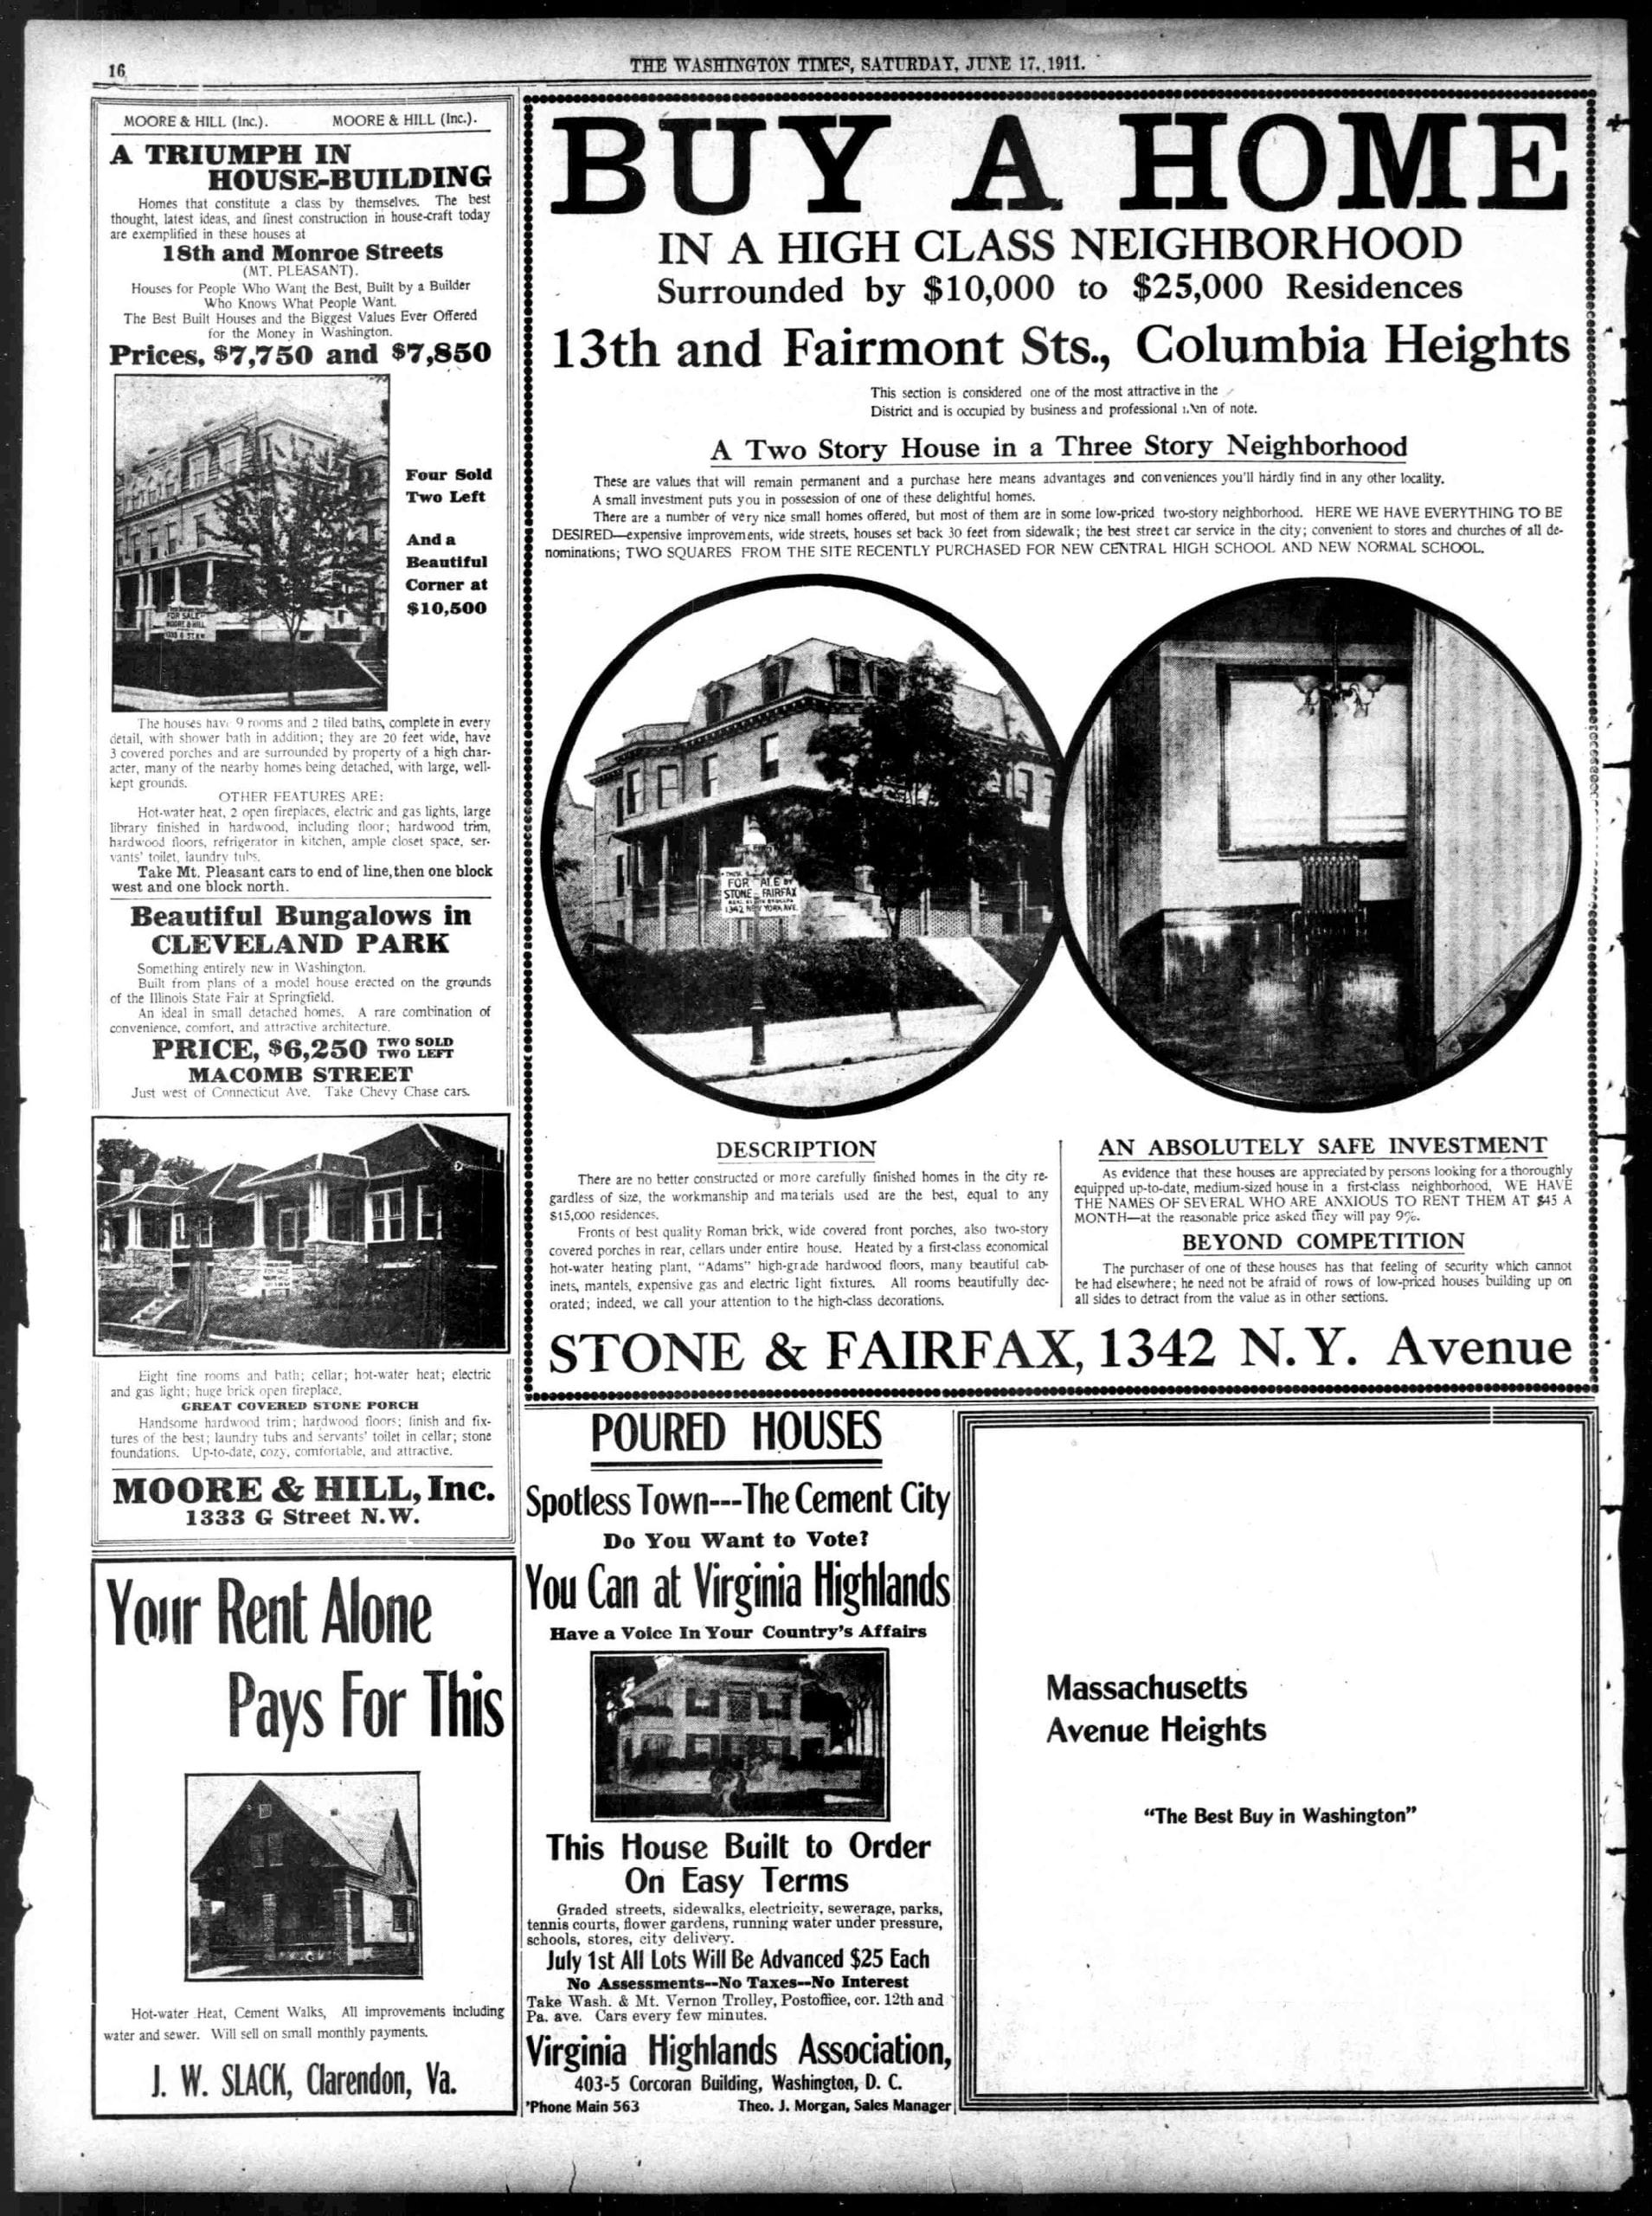 The Washington Times - Saturday, June 17th, 1911